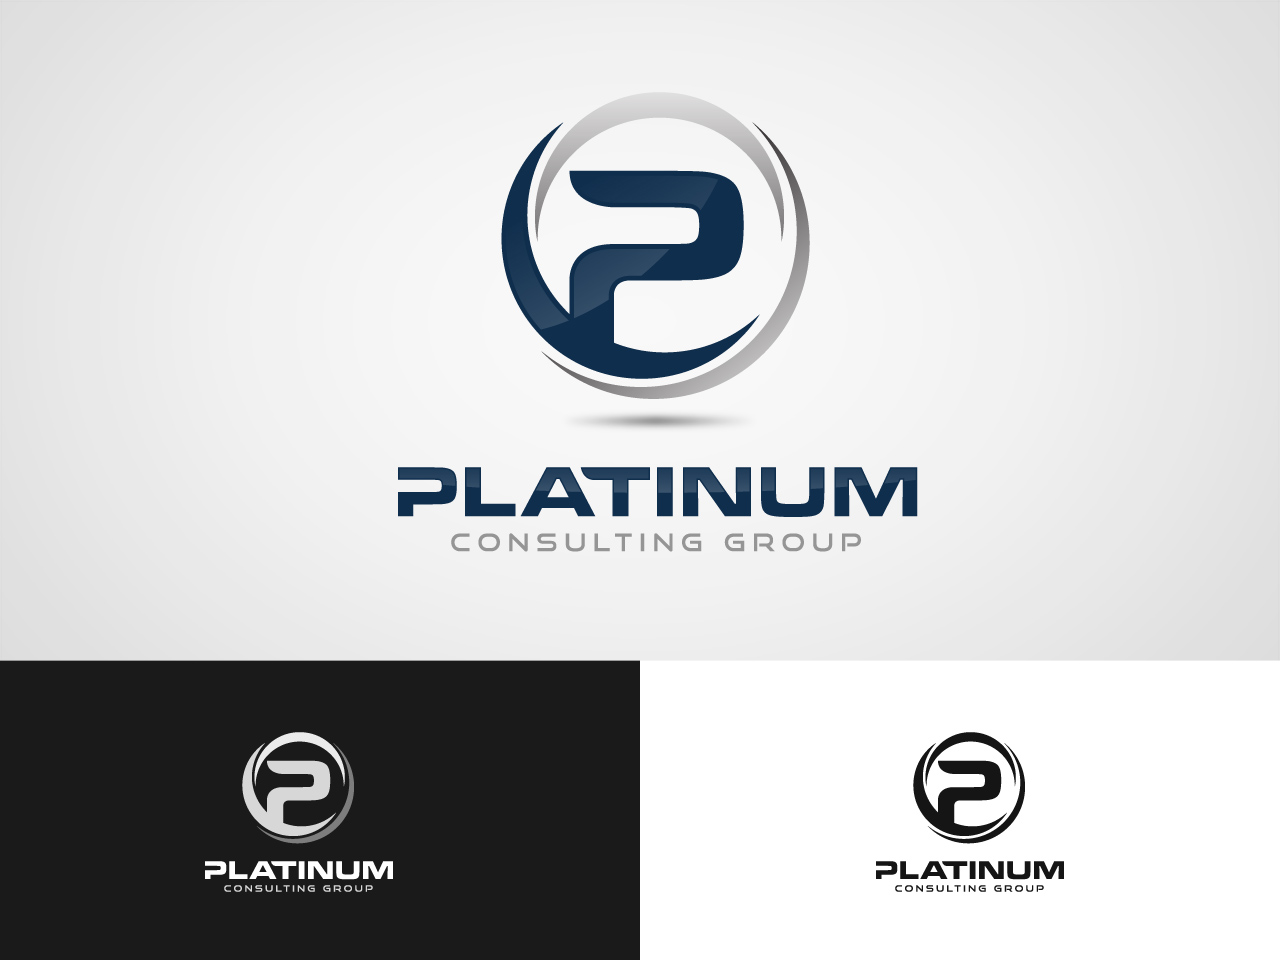 Logo Design by jpbituin - Entry No. 35 in the Logo Design Contest Captivating Logo Design for Platinum Consulting Group.